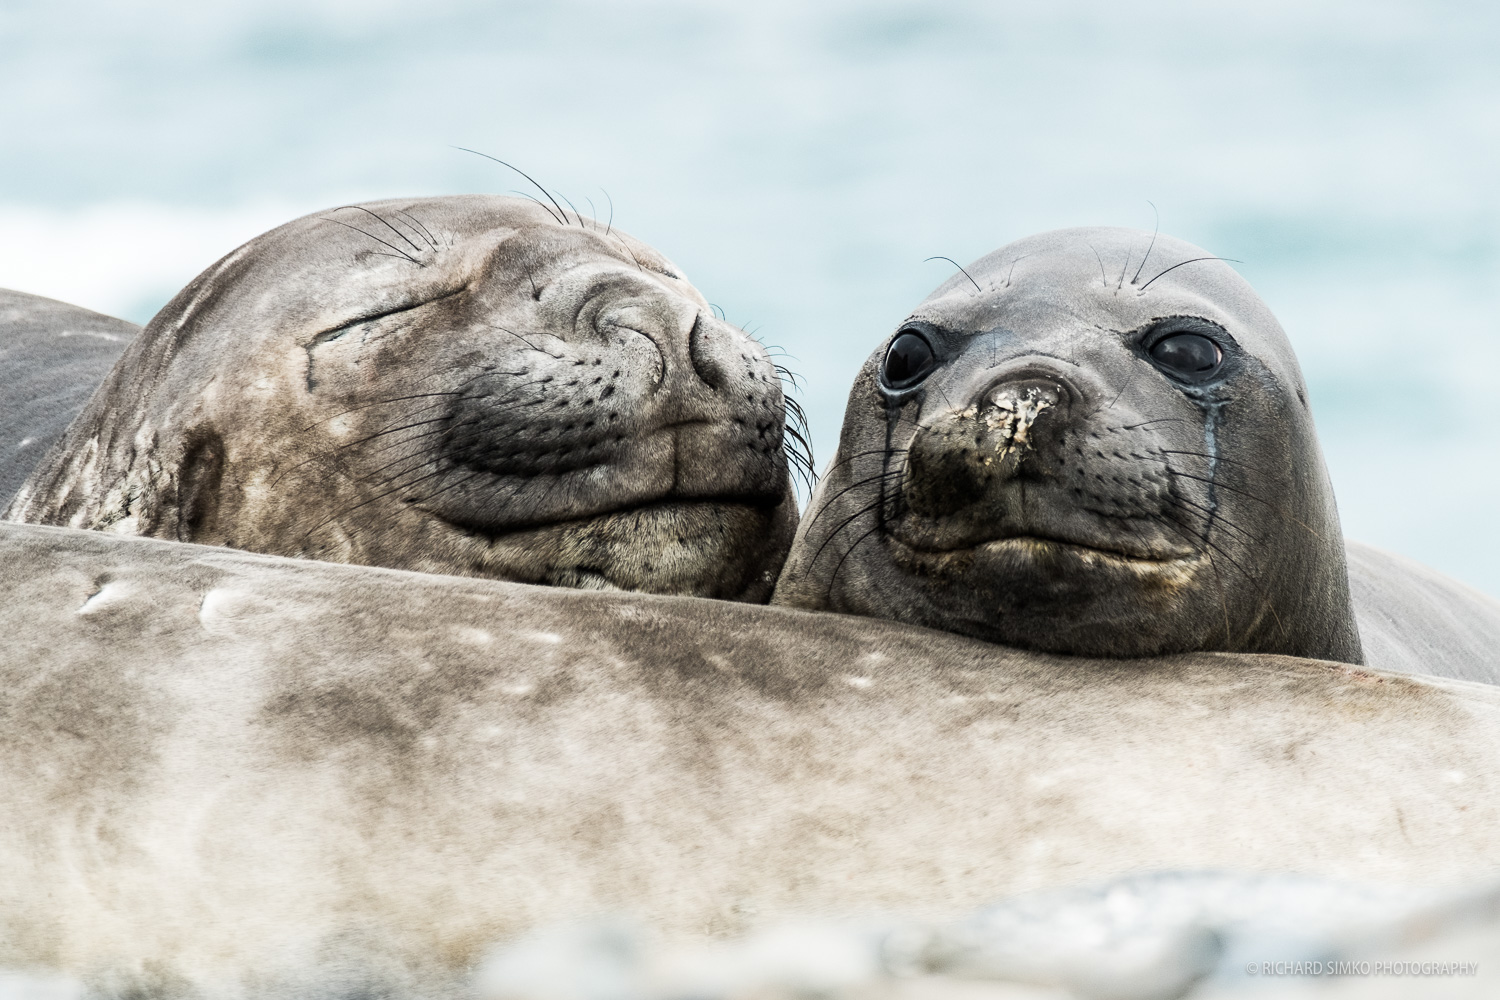 We came across these two Elephant seal babies snoozing on the beach.